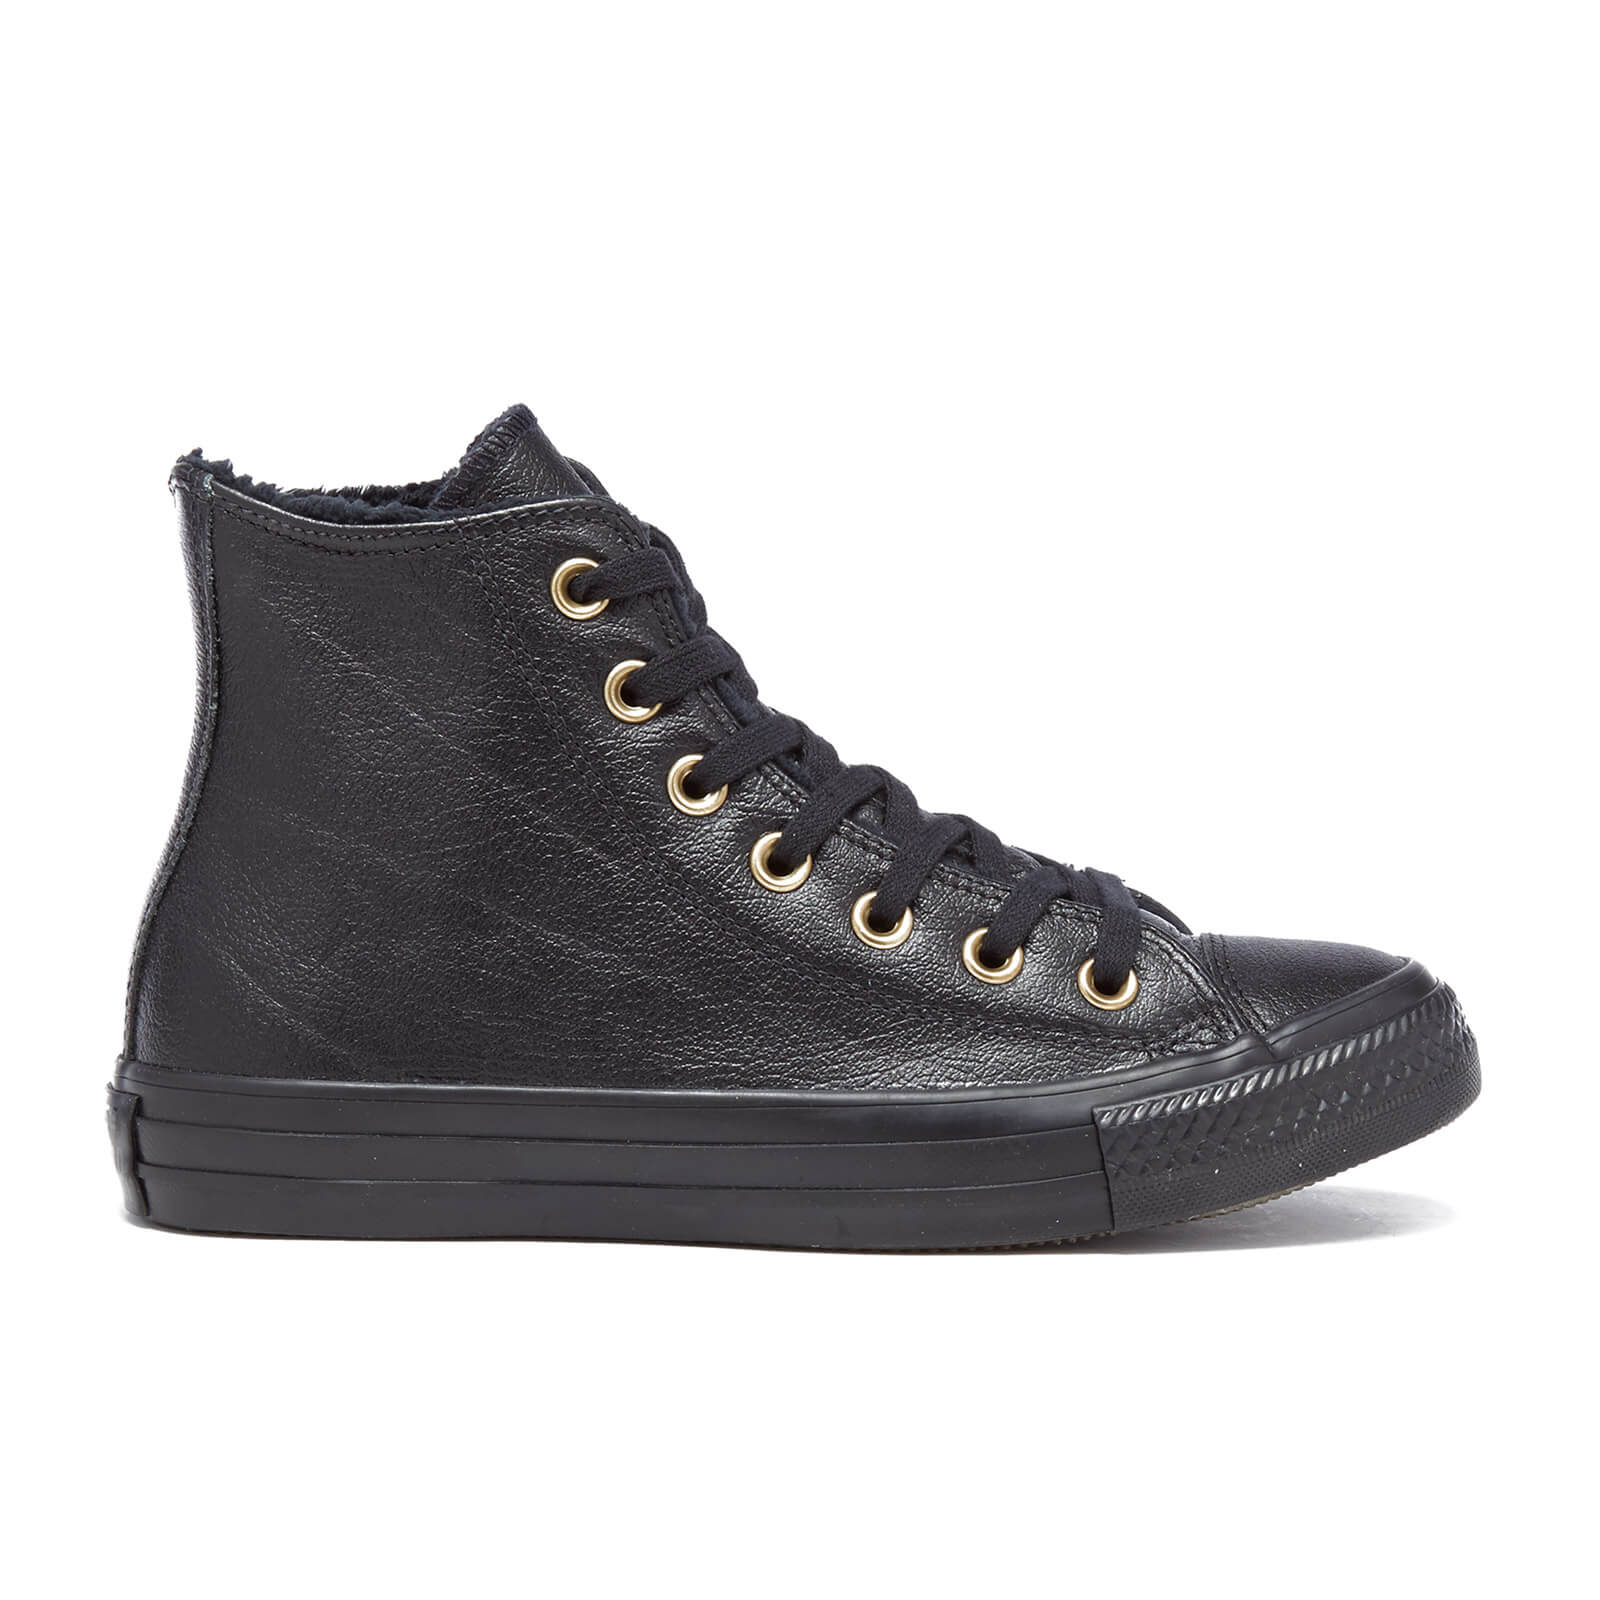 9bbffd8cab2813 Converse Women s Chuck Taylor All Star Leather Fur Hi-Top Trainers - Black  Black - Free UK Delivery over £50